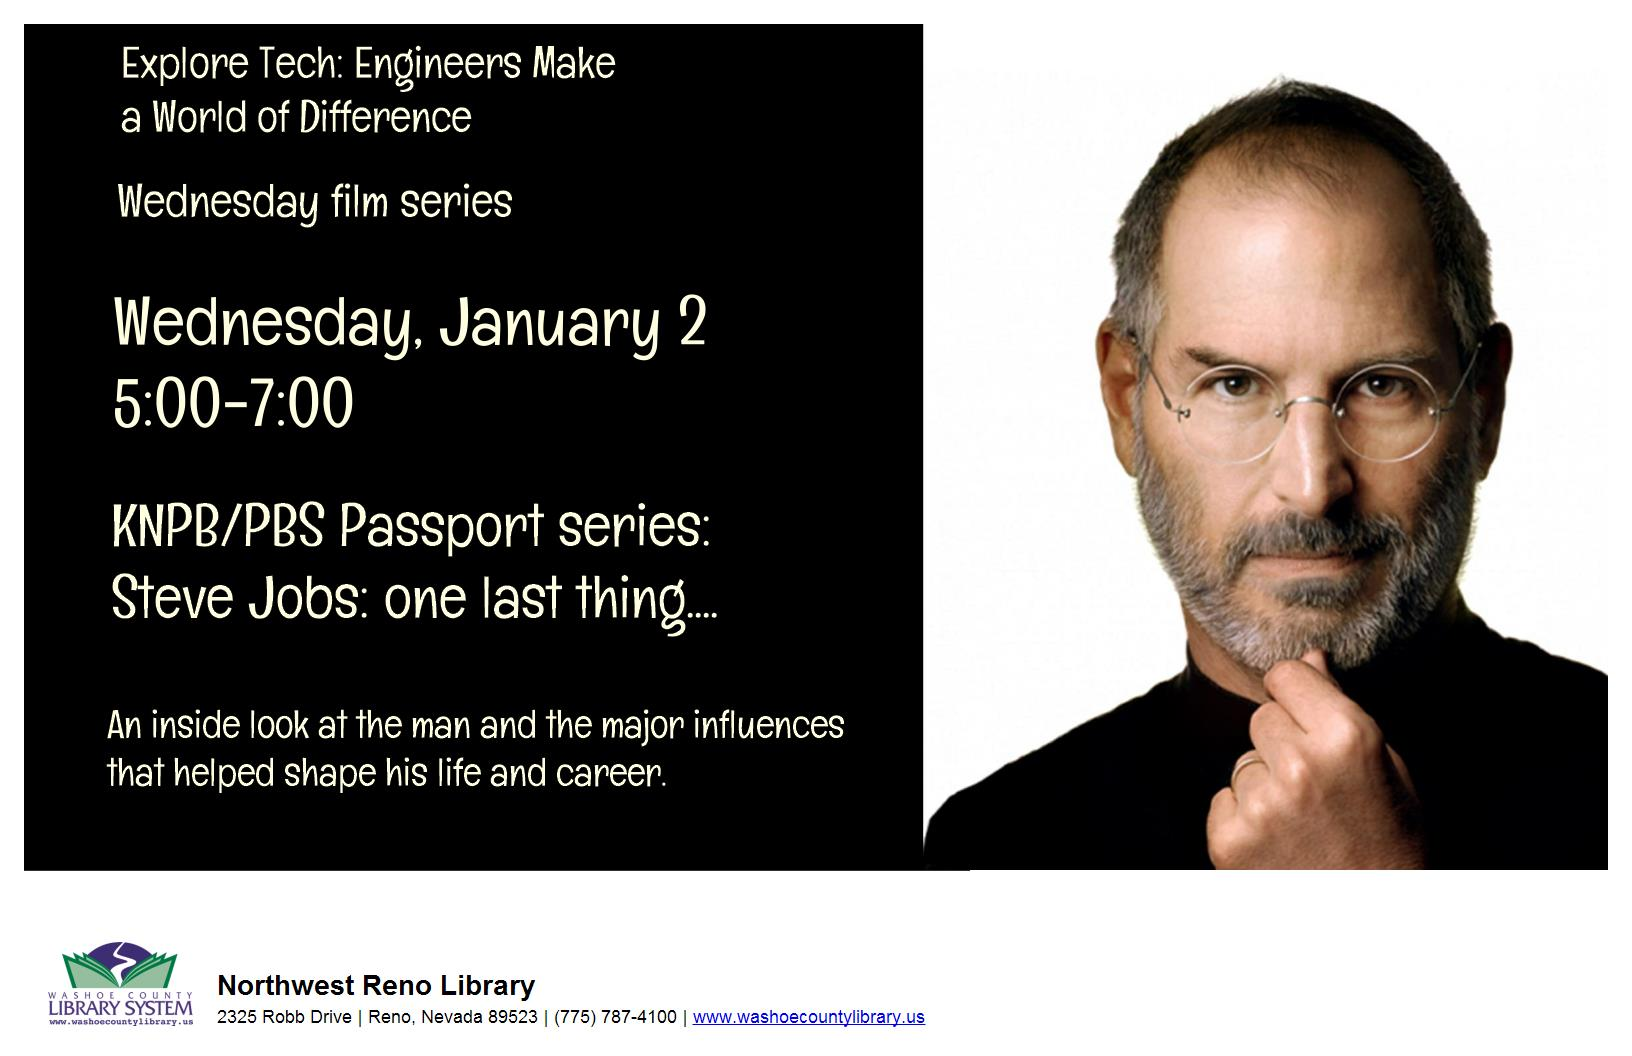 KNPB Passport Film Series: Steve Jobs: One Last Thing